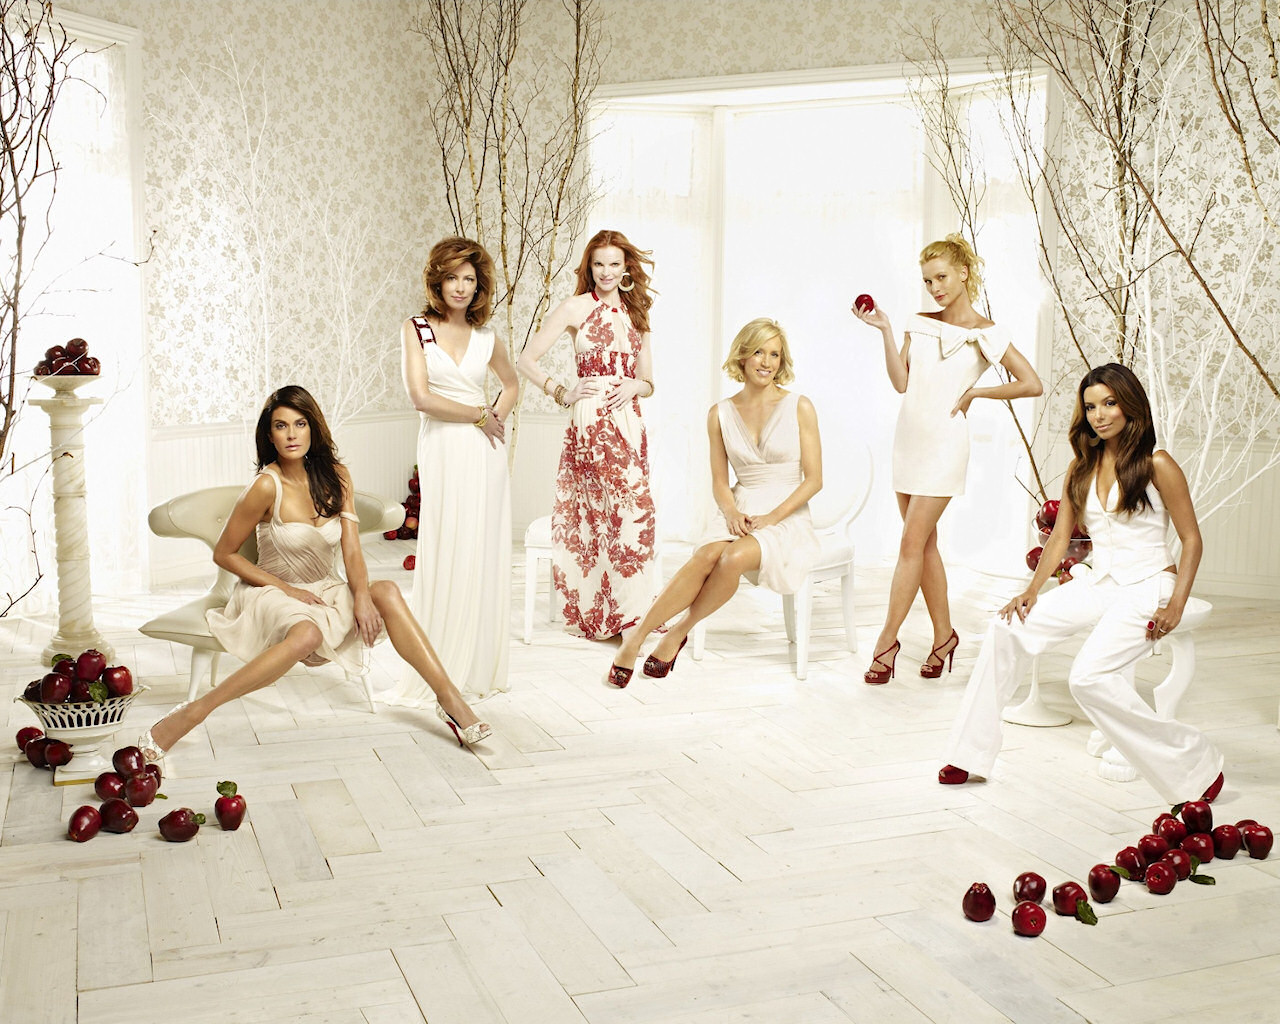 Desperate_Housewives_20_1280x1024.jpg